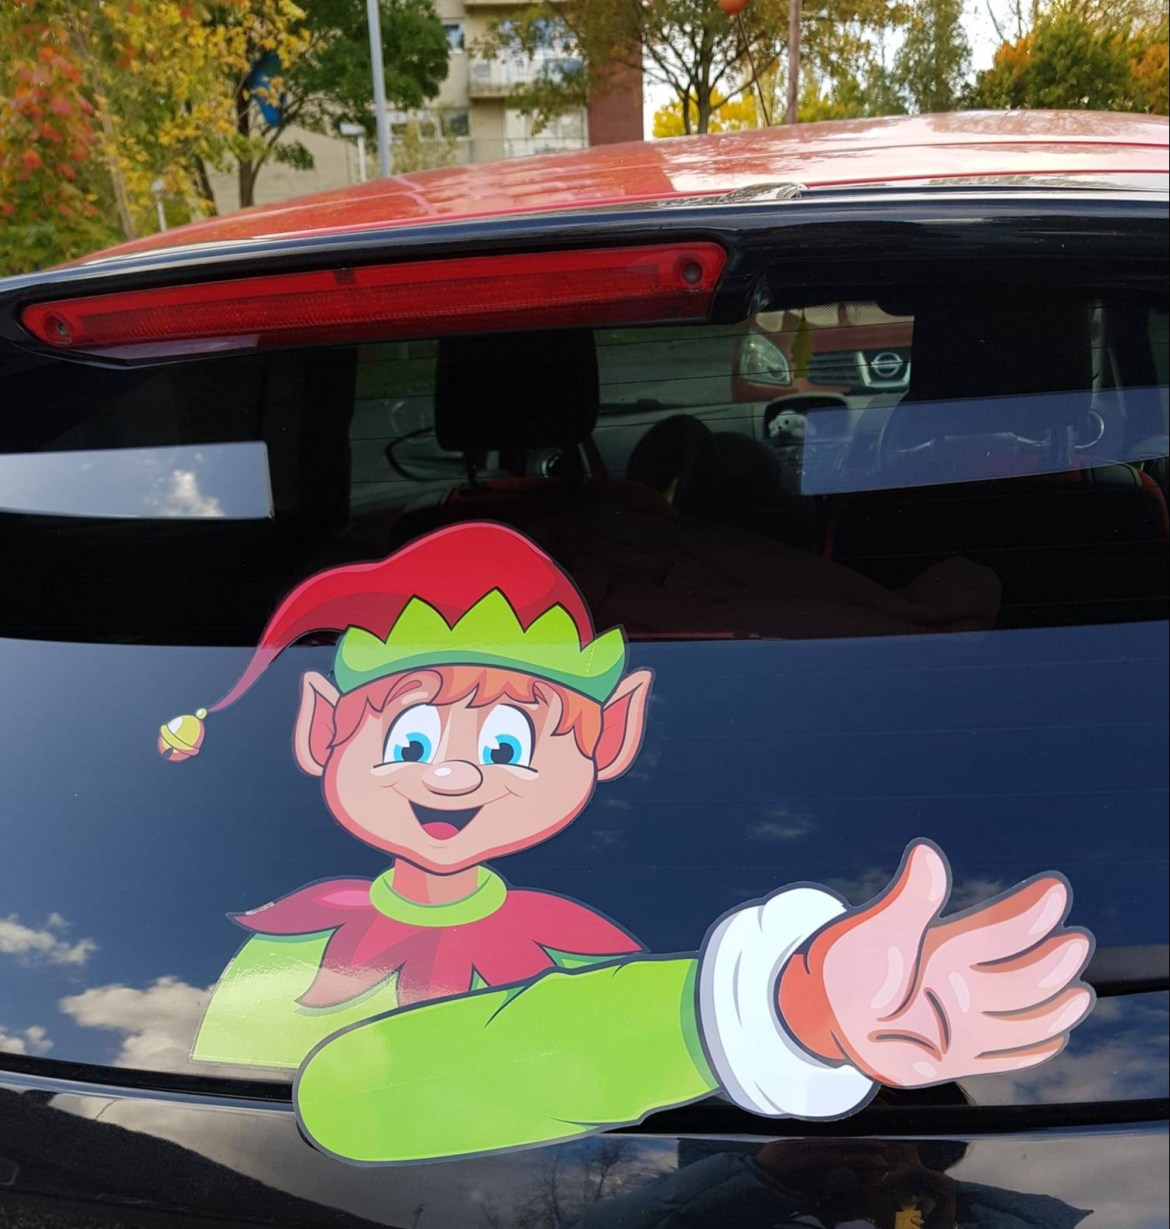 The elf windscreen wiper from Home Bargains proved popular with shoppers